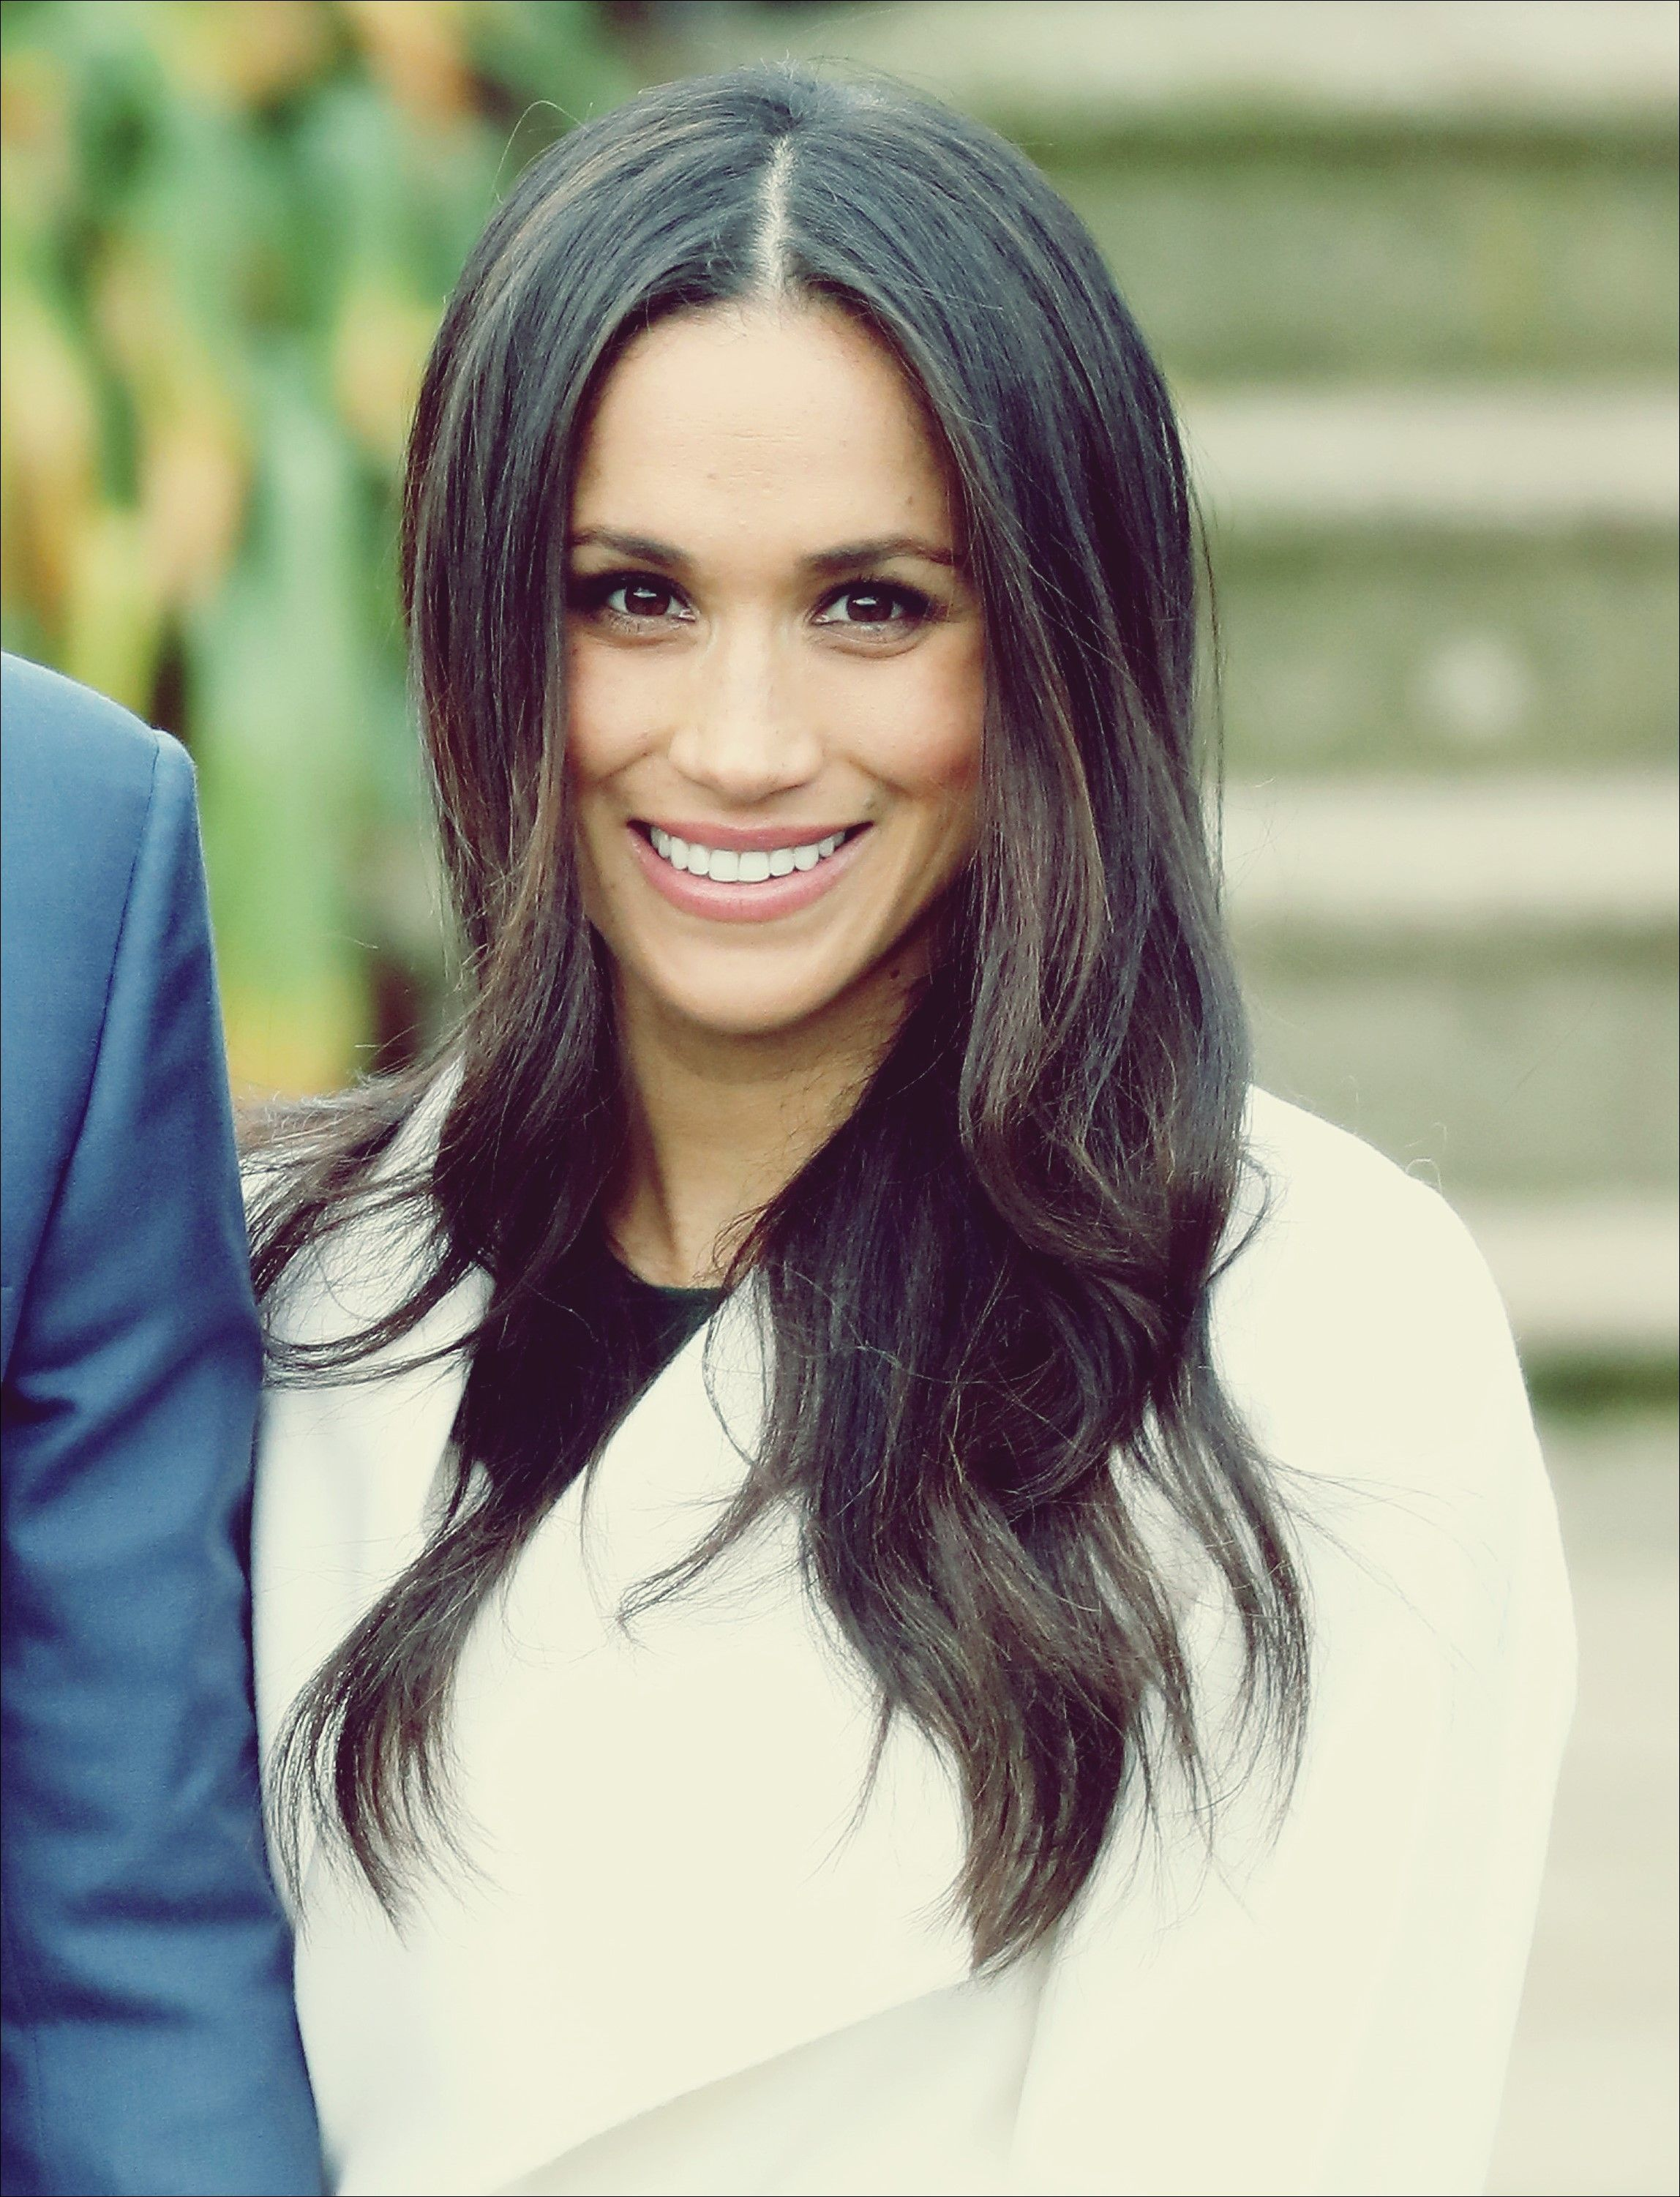 Meghan Markle Haircuts - 11 Royal Hair Look to Copy Now - Frisur